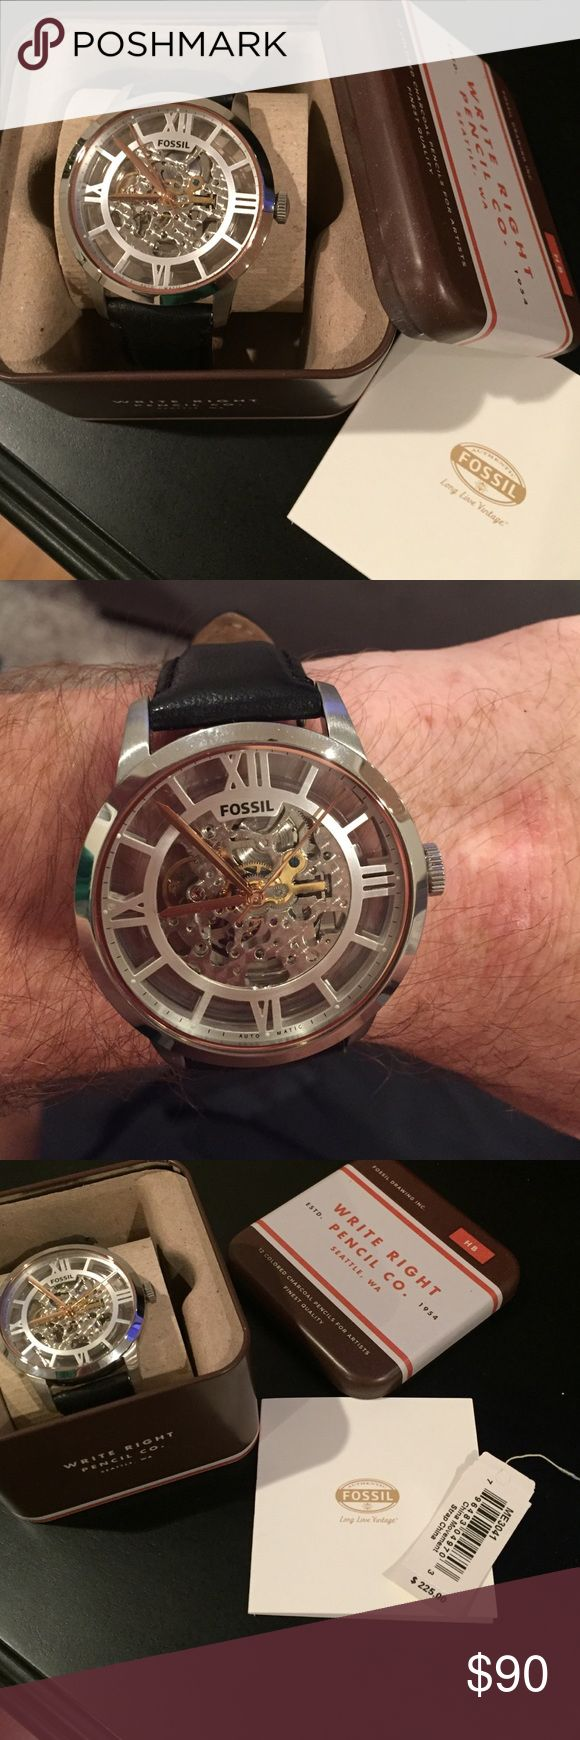 Skeleton face fossil watch Great Christmas present! Men's skeleton face fossil watch. Black leather band. Does not require batteries. Runs on perpetual motion. Absolutely nothing wrong. No scratches. Worn a few times. With original box and tag. Fossil Accessories Watches